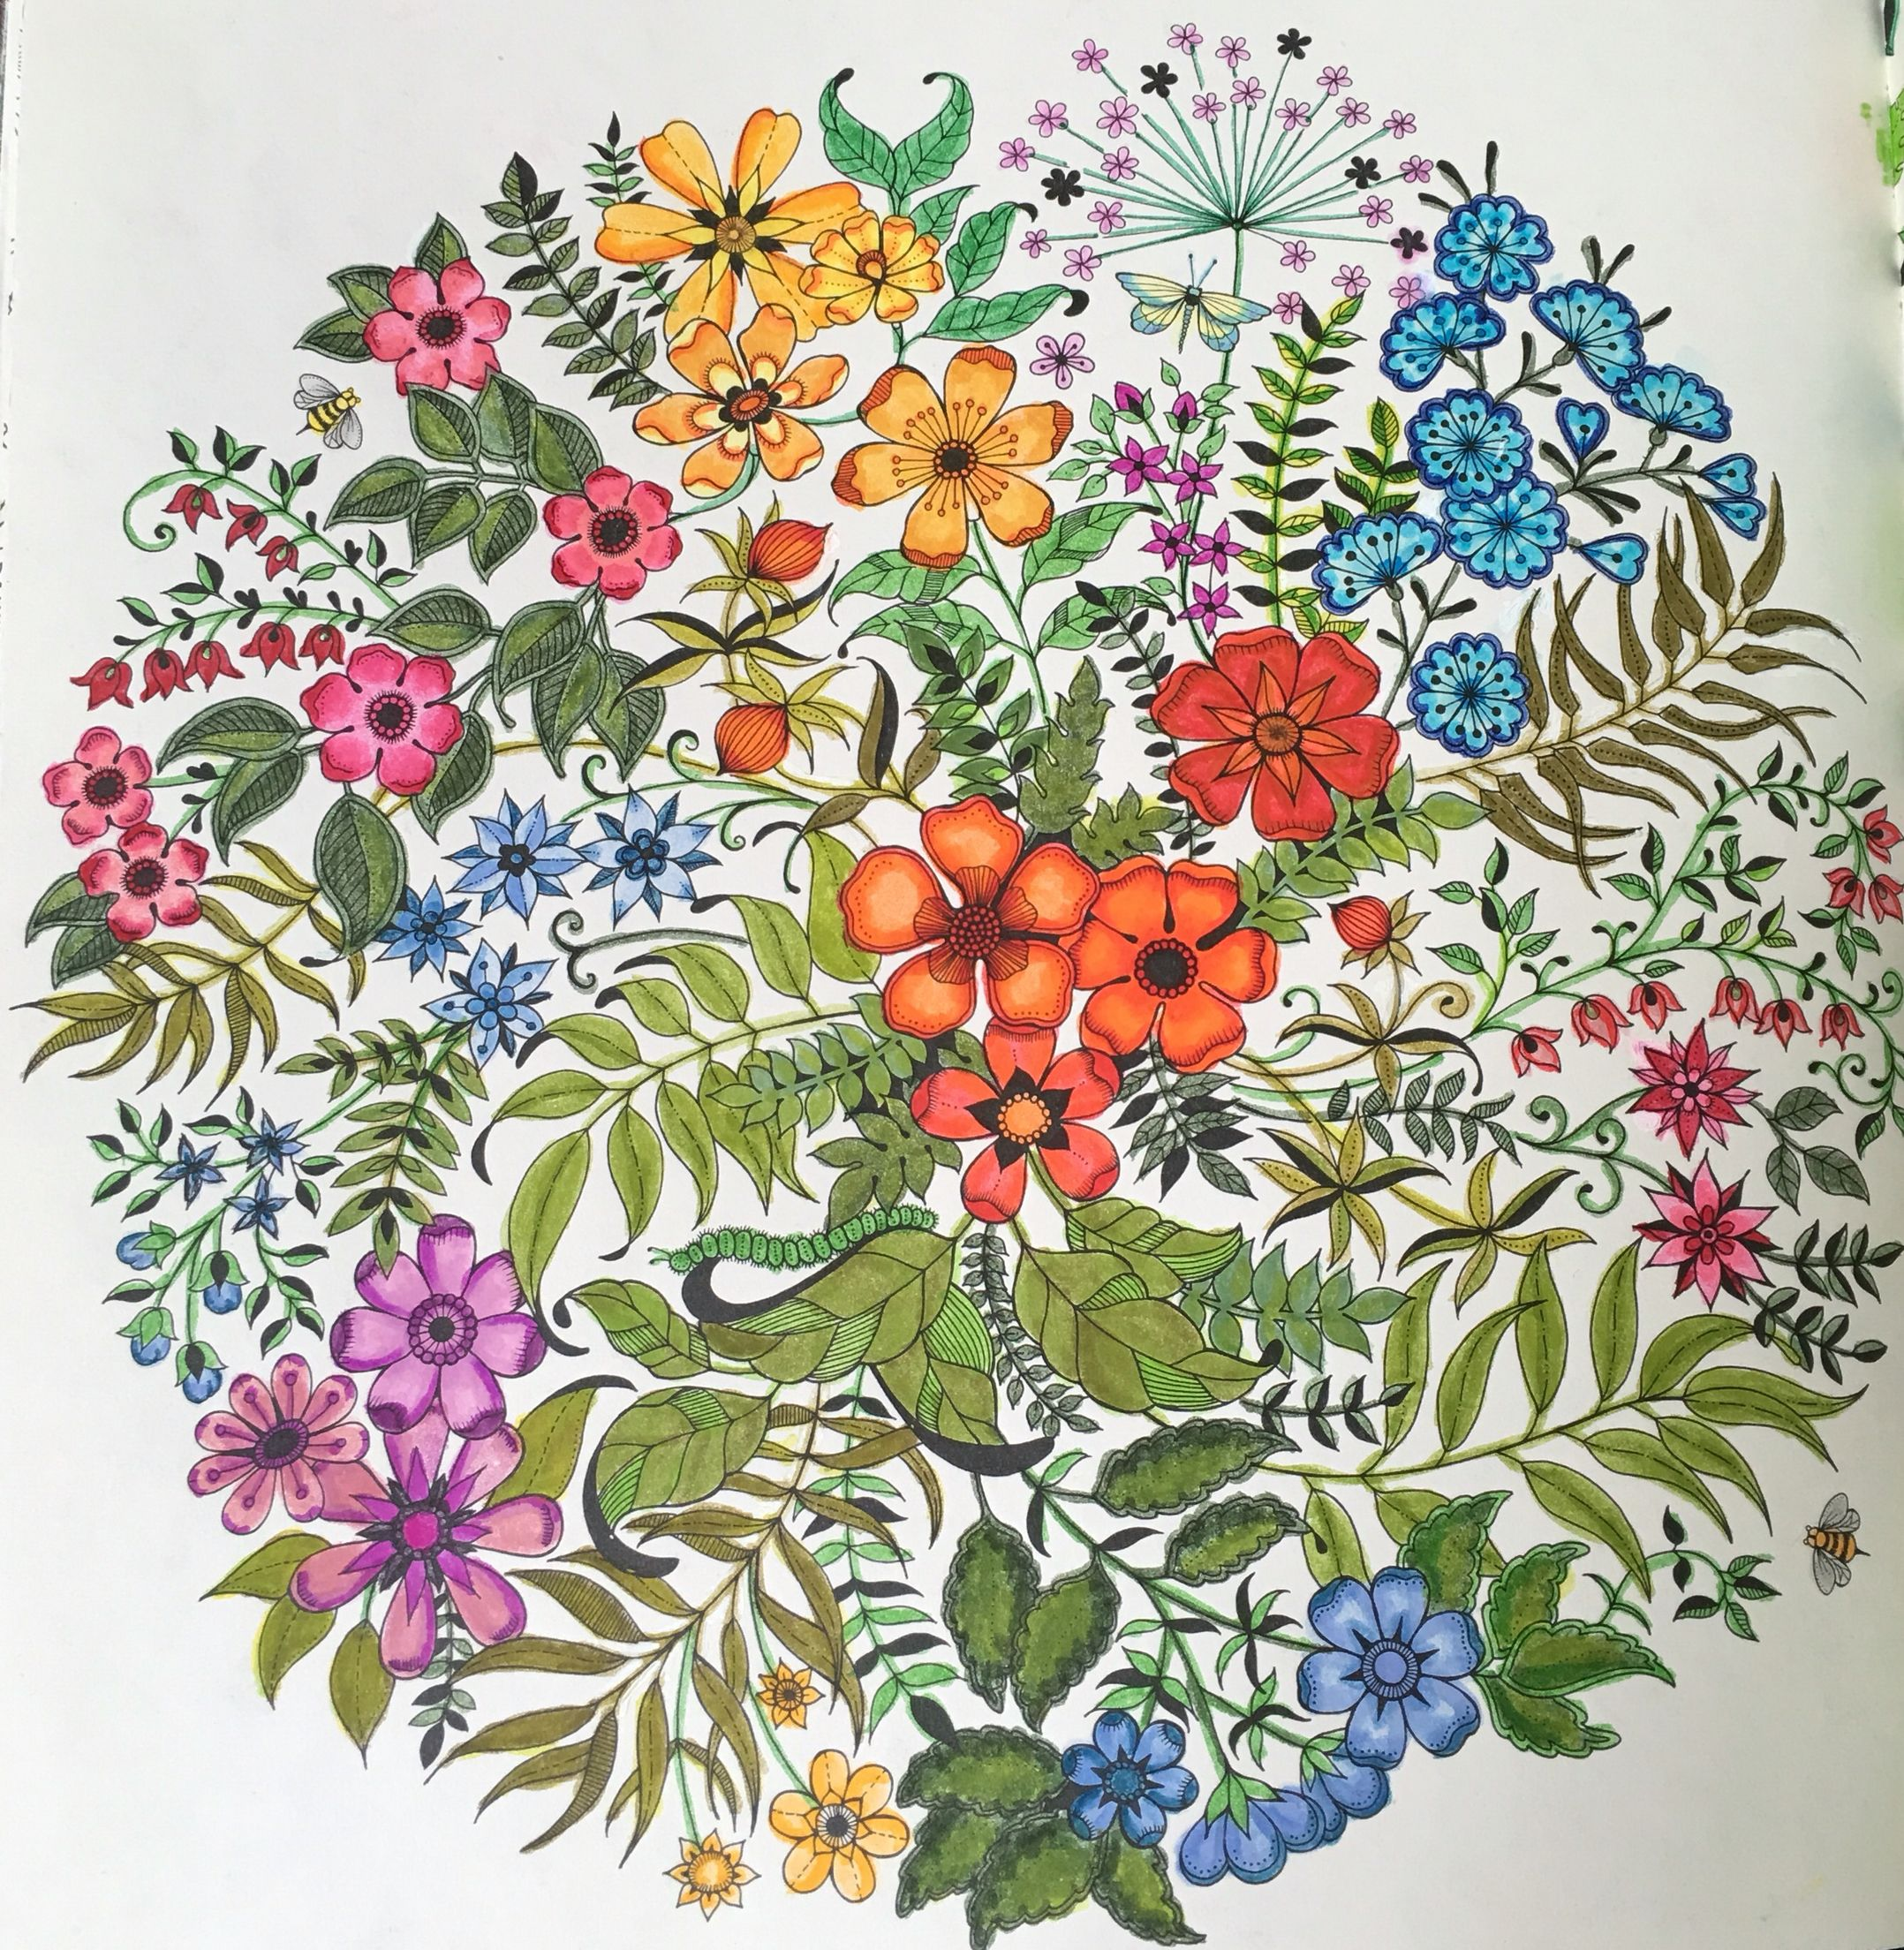 Secret Garden Coloring Book Tom Bow Markers Johanna Basford Coloring Secret Garden Coloring Book Finished Secret Garden Coloring Book